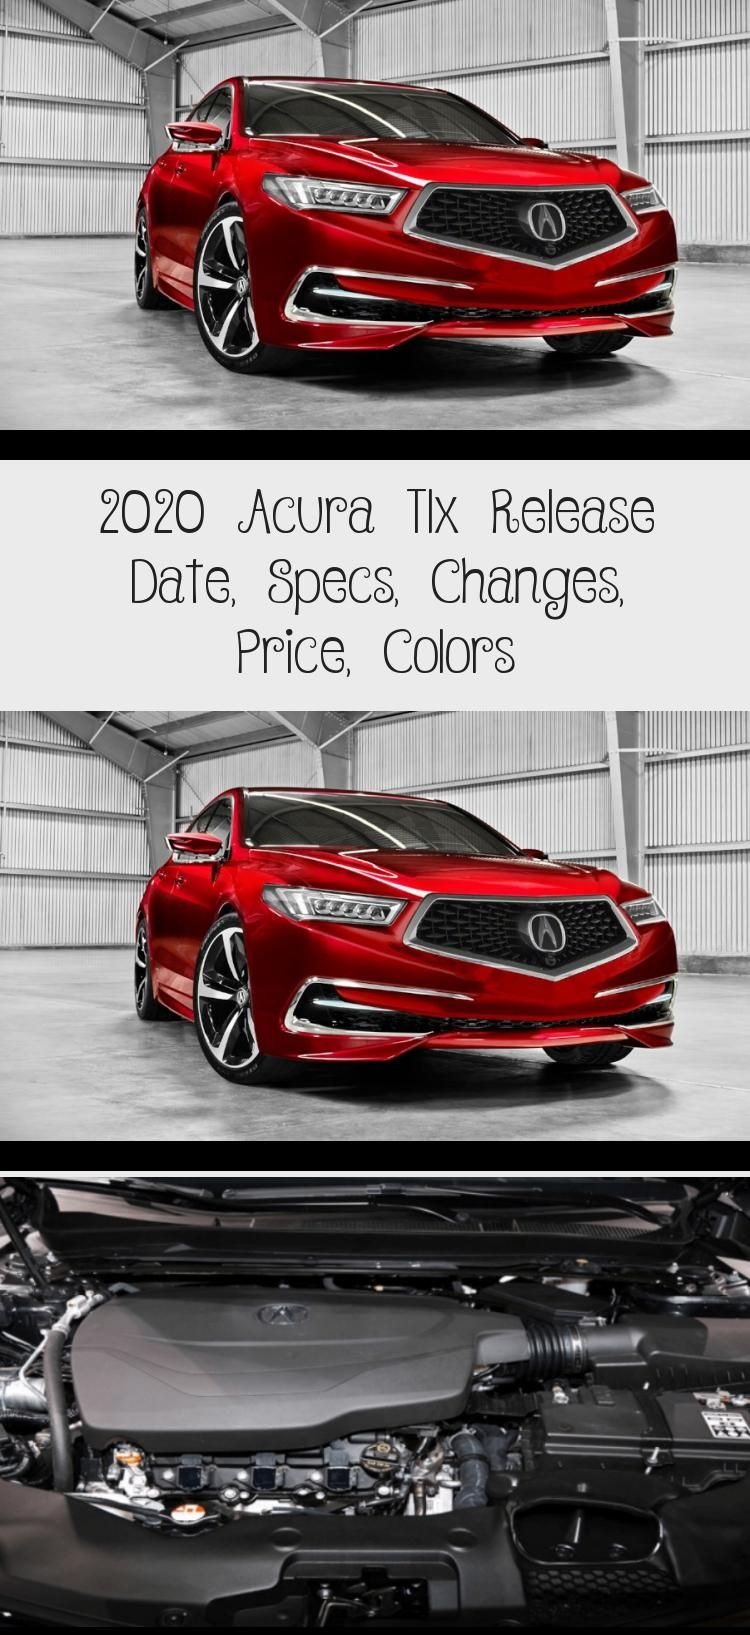 2020 Acura Tlx Release Date Specs Changes Price Colors In 2020 Acura Tlx Acura Buick Lacrosse